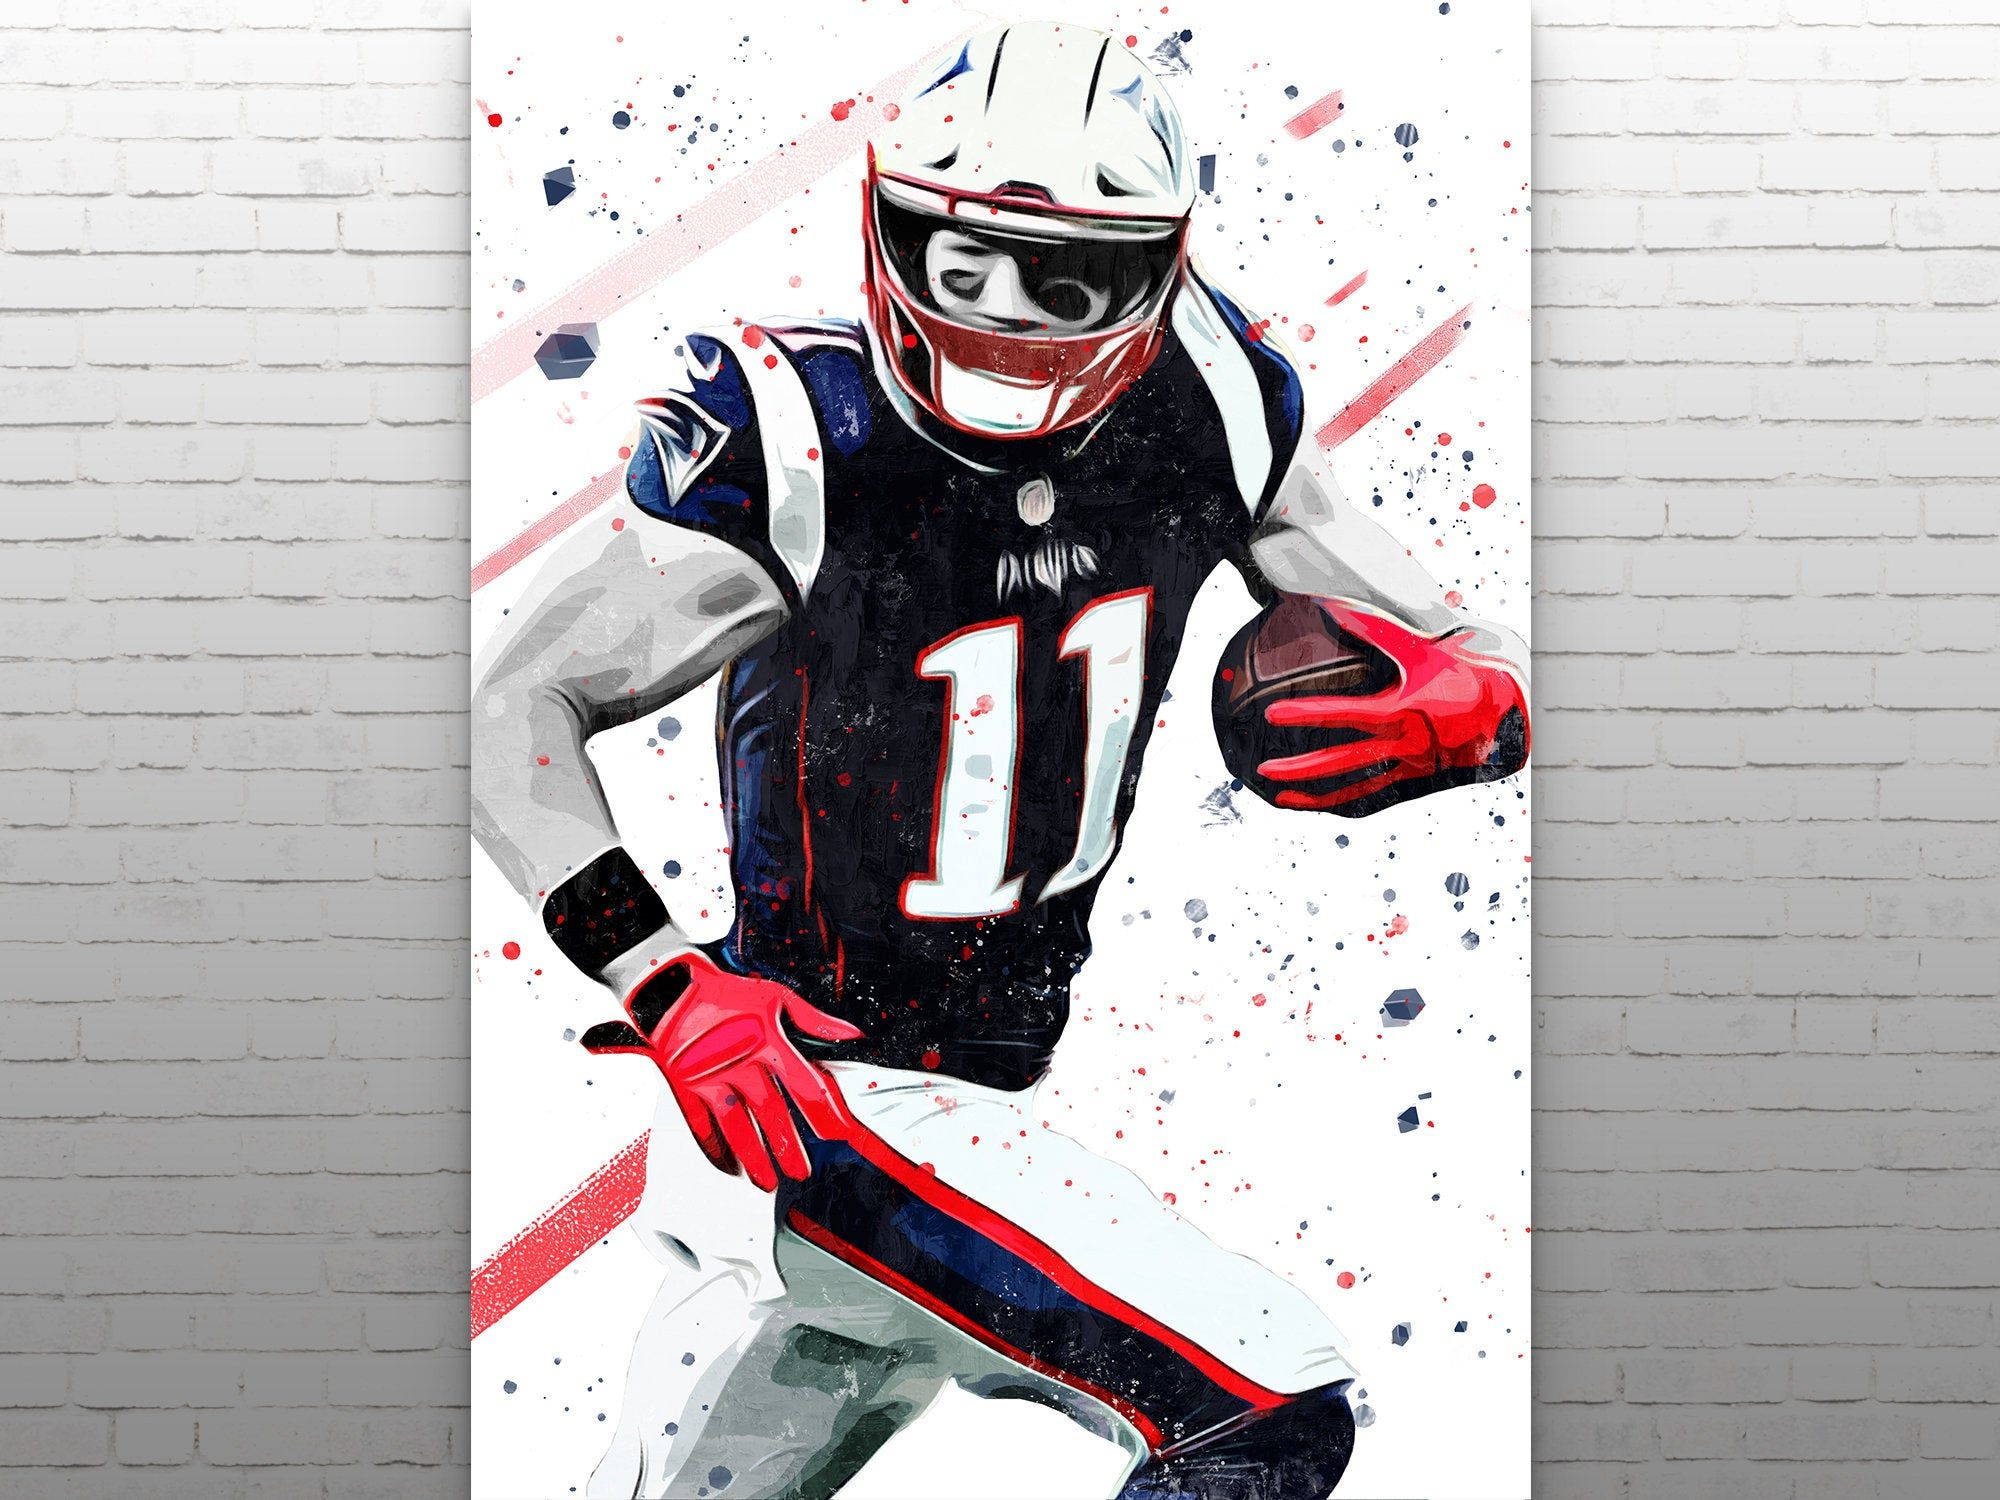 Julian Edelman New England Patriots Poster Canvas Print Frame Poster Sports Art Print Football Poster Kids Decor Man Cave Gift In 2020 Sports Art Print New England Patriots Patriotic Posters